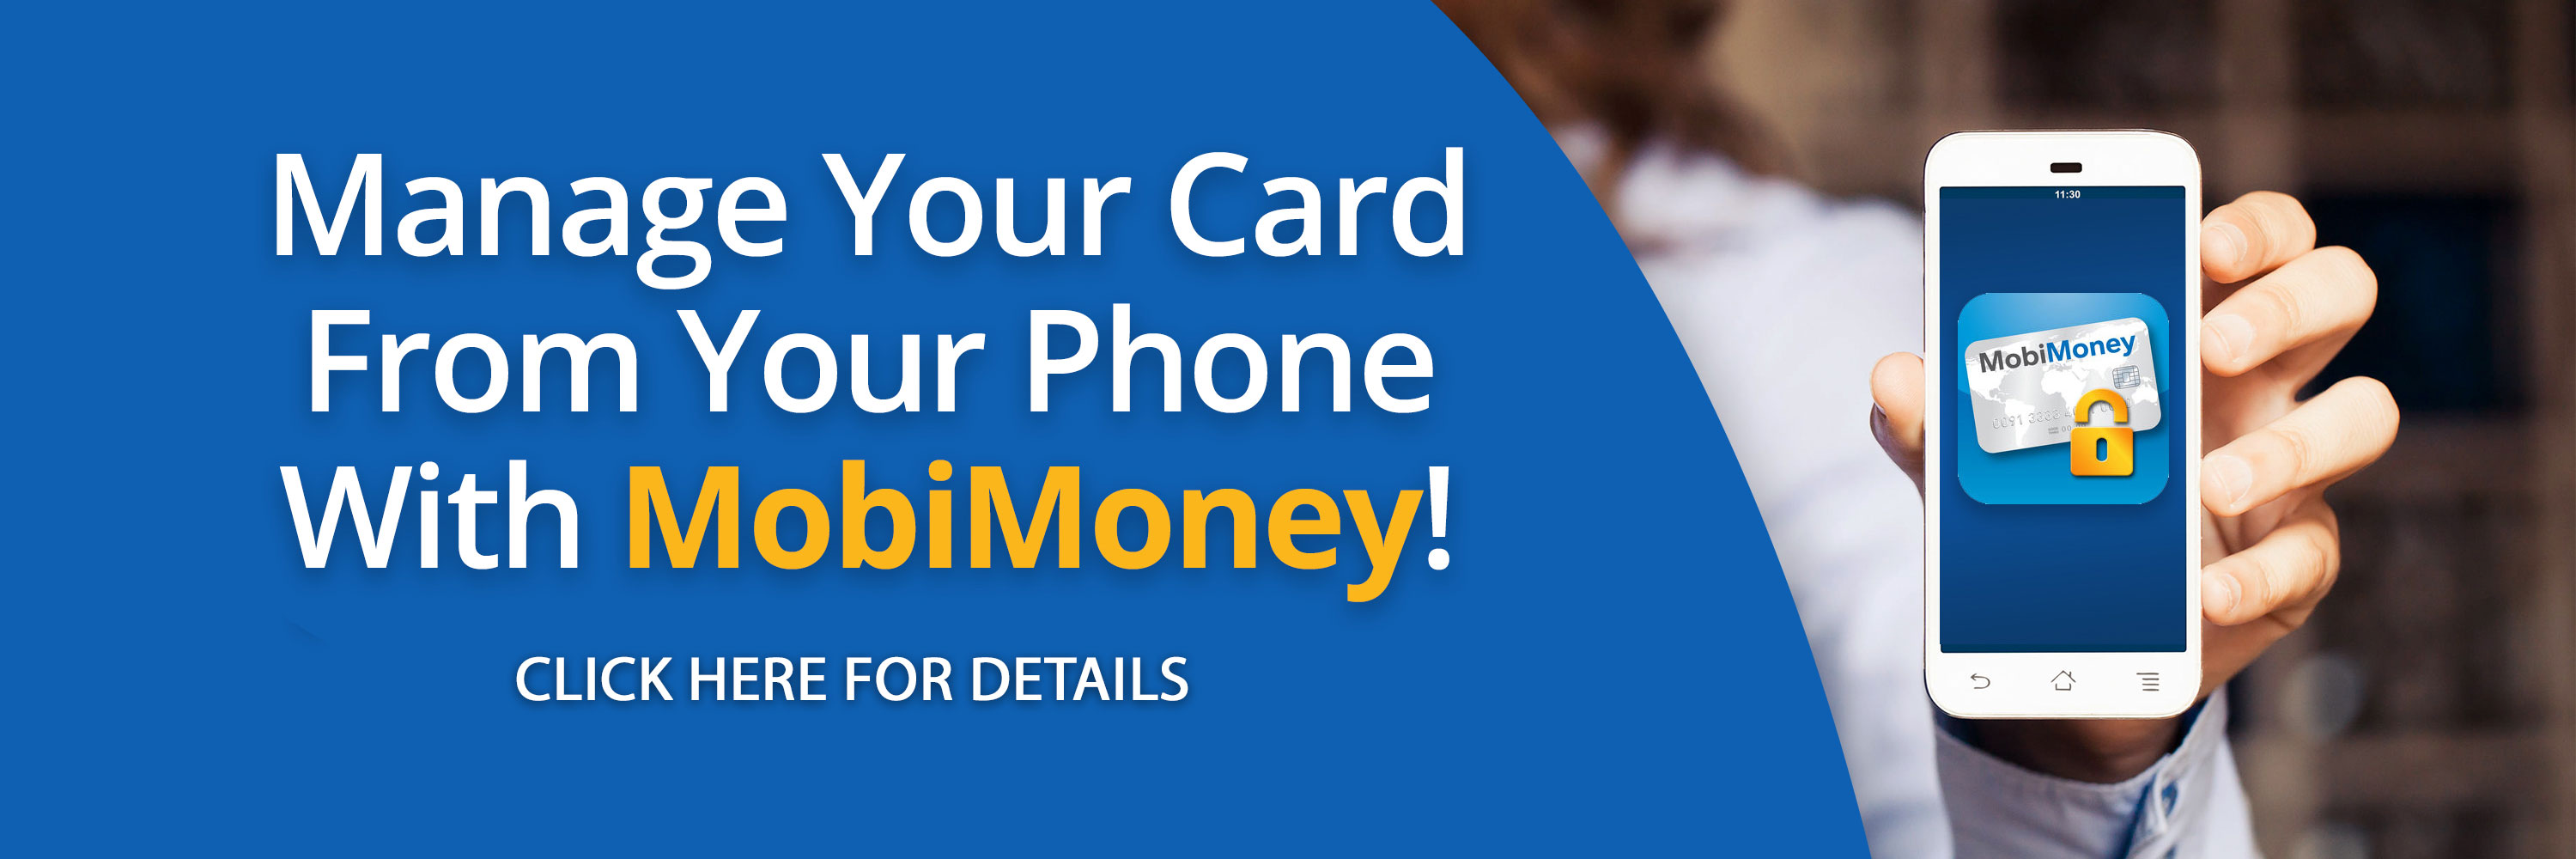 Manage your card from your phone with MobiMoney!